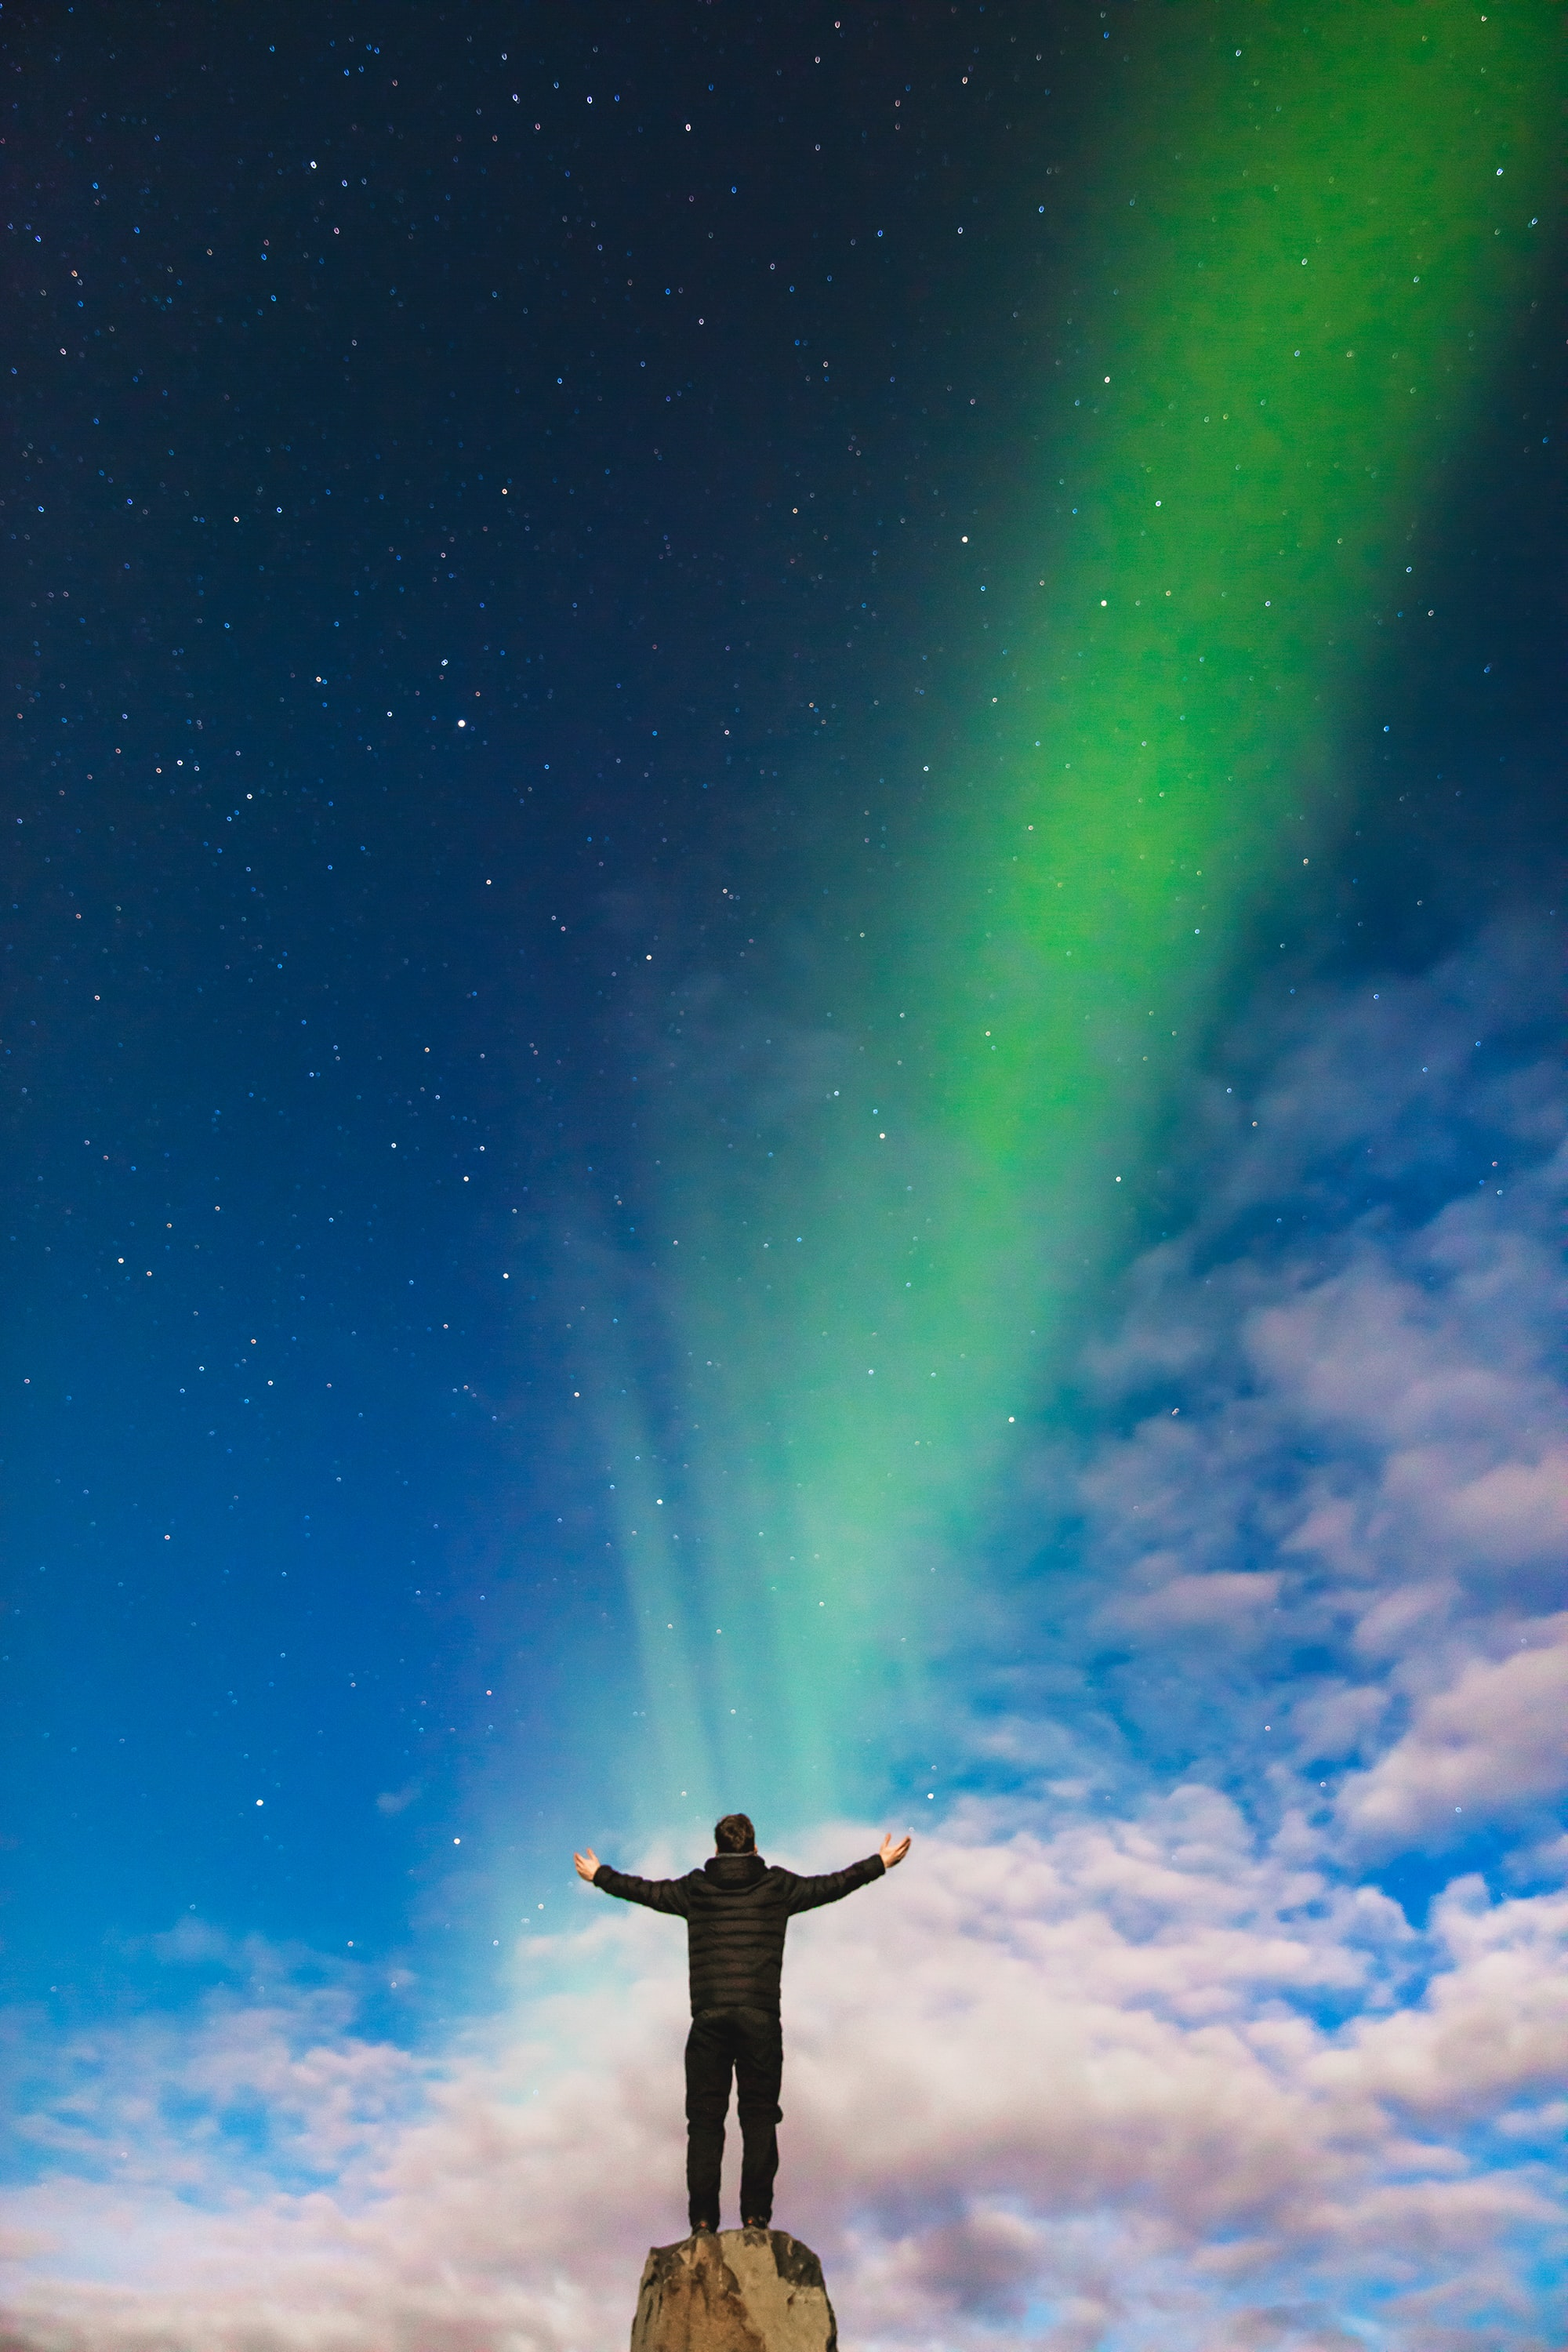 A man raising his arms on top of a rock formation while staring out at a Northern Lights beam in Iceland as it appears to shine onto him